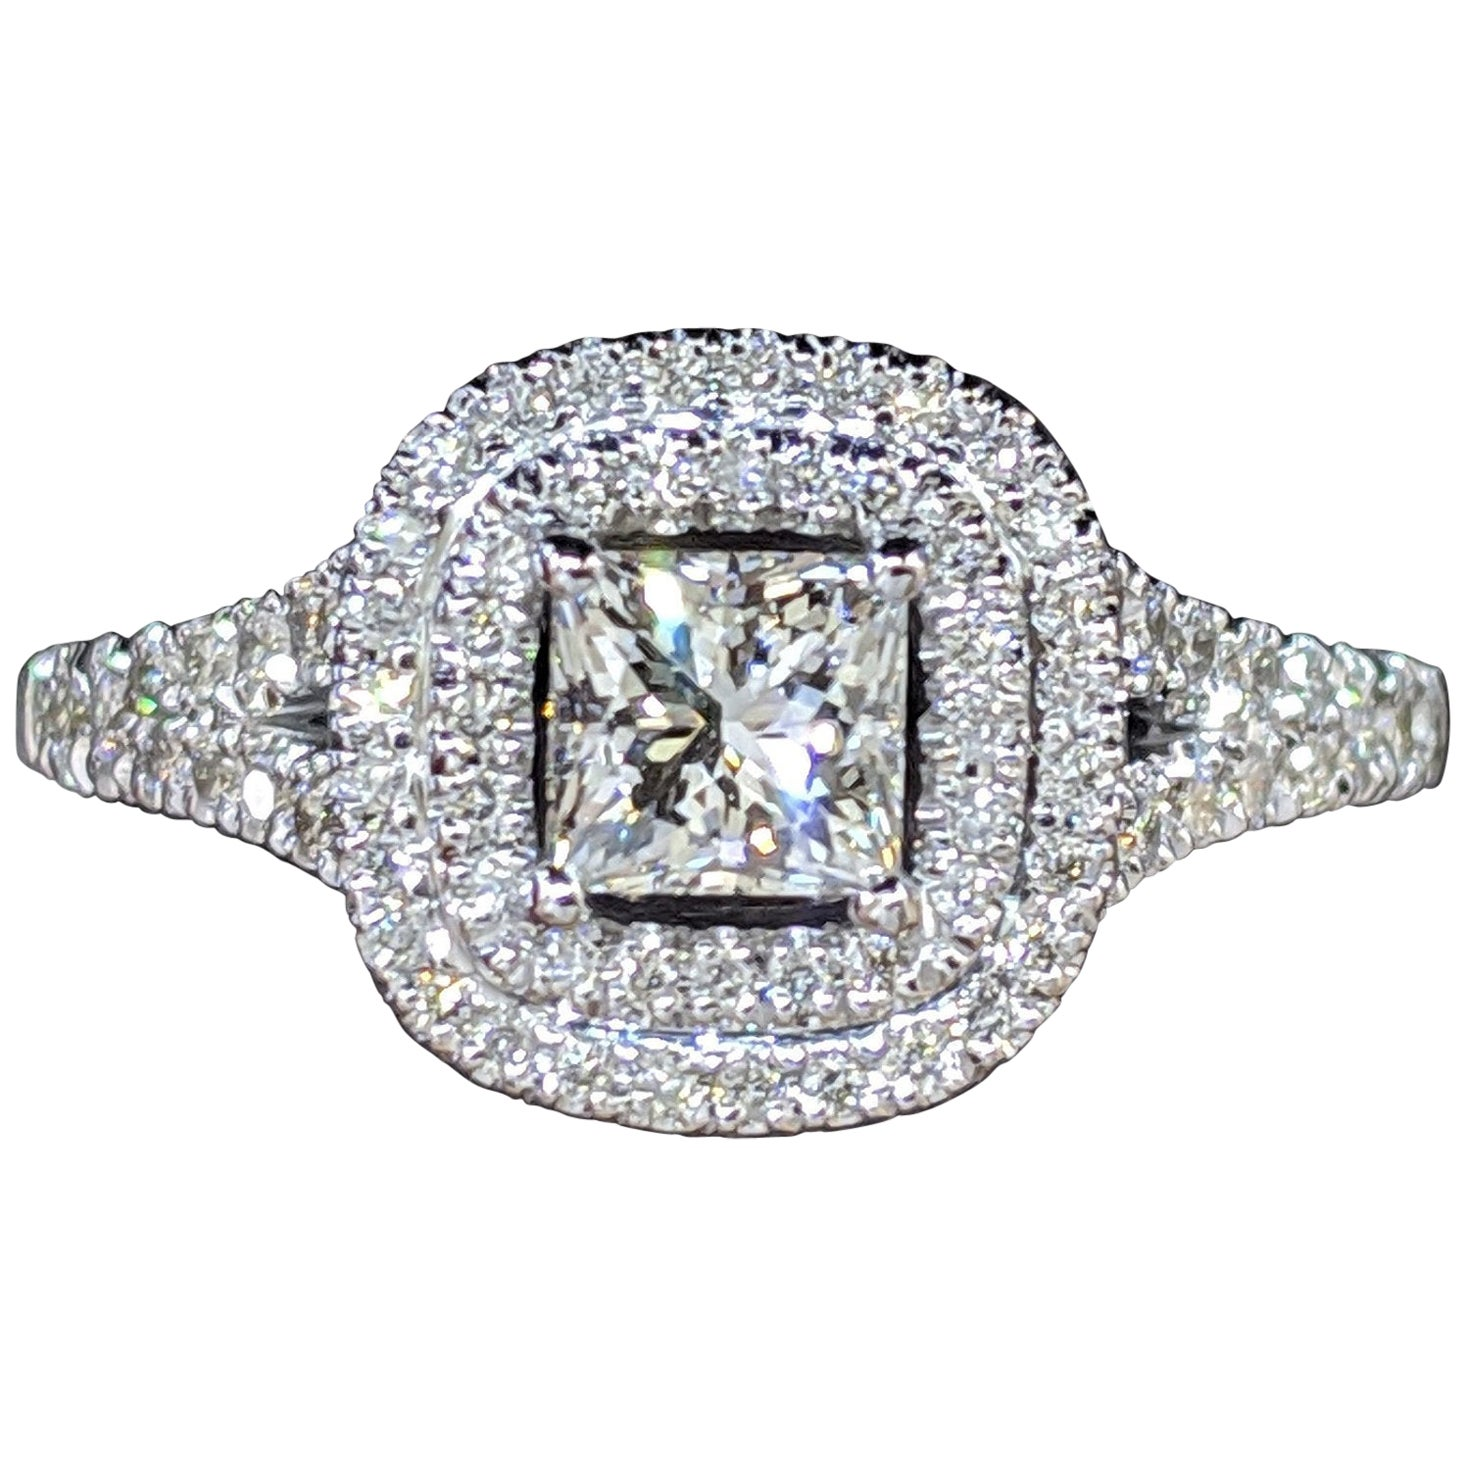 GIA Certified 1 1/2 Carat 14 Karat White Gold Princess Diamond Engagement Ring